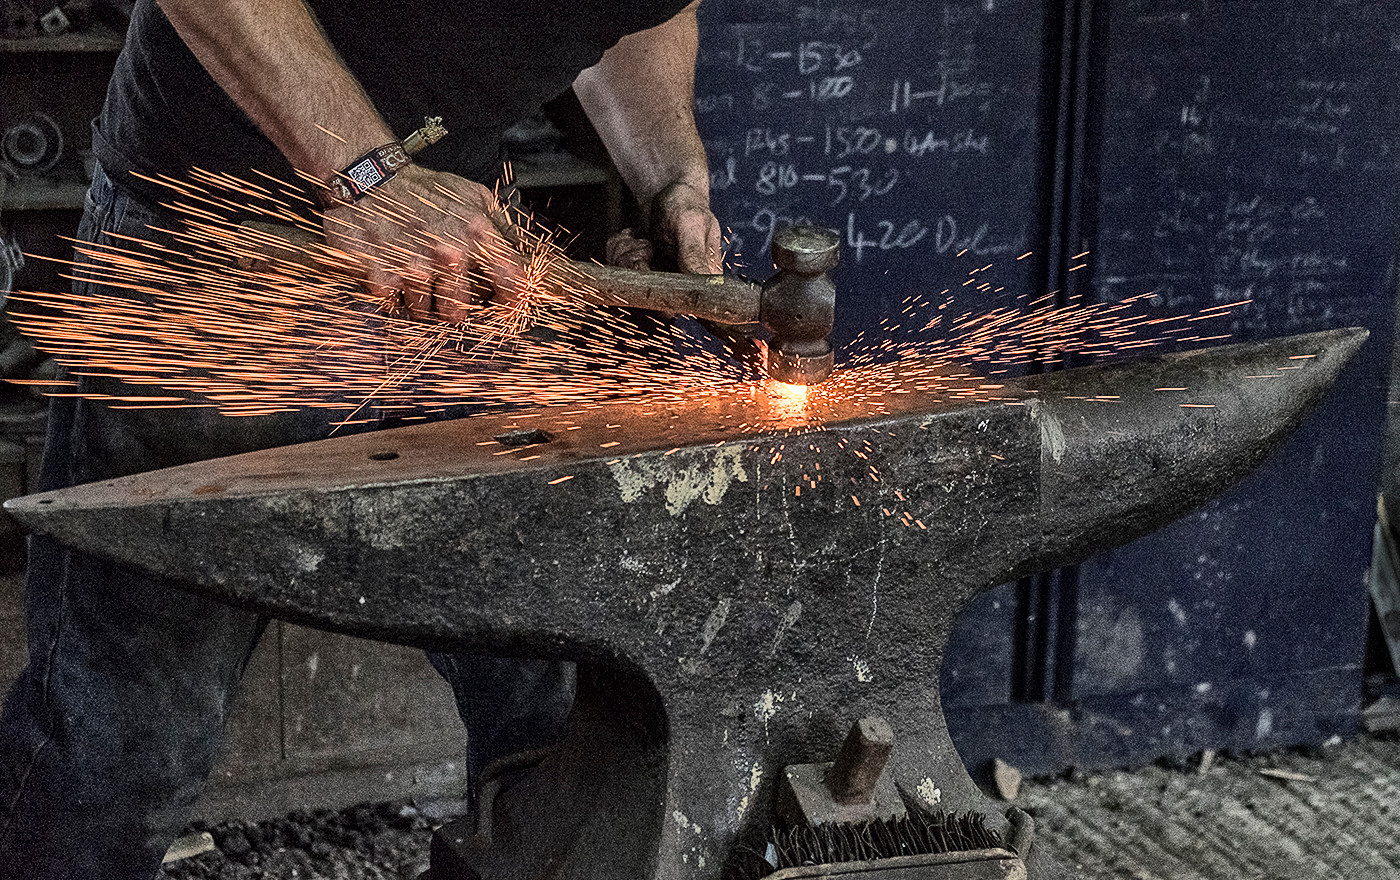 BLACKSMITH AT WORK by Colin Smith